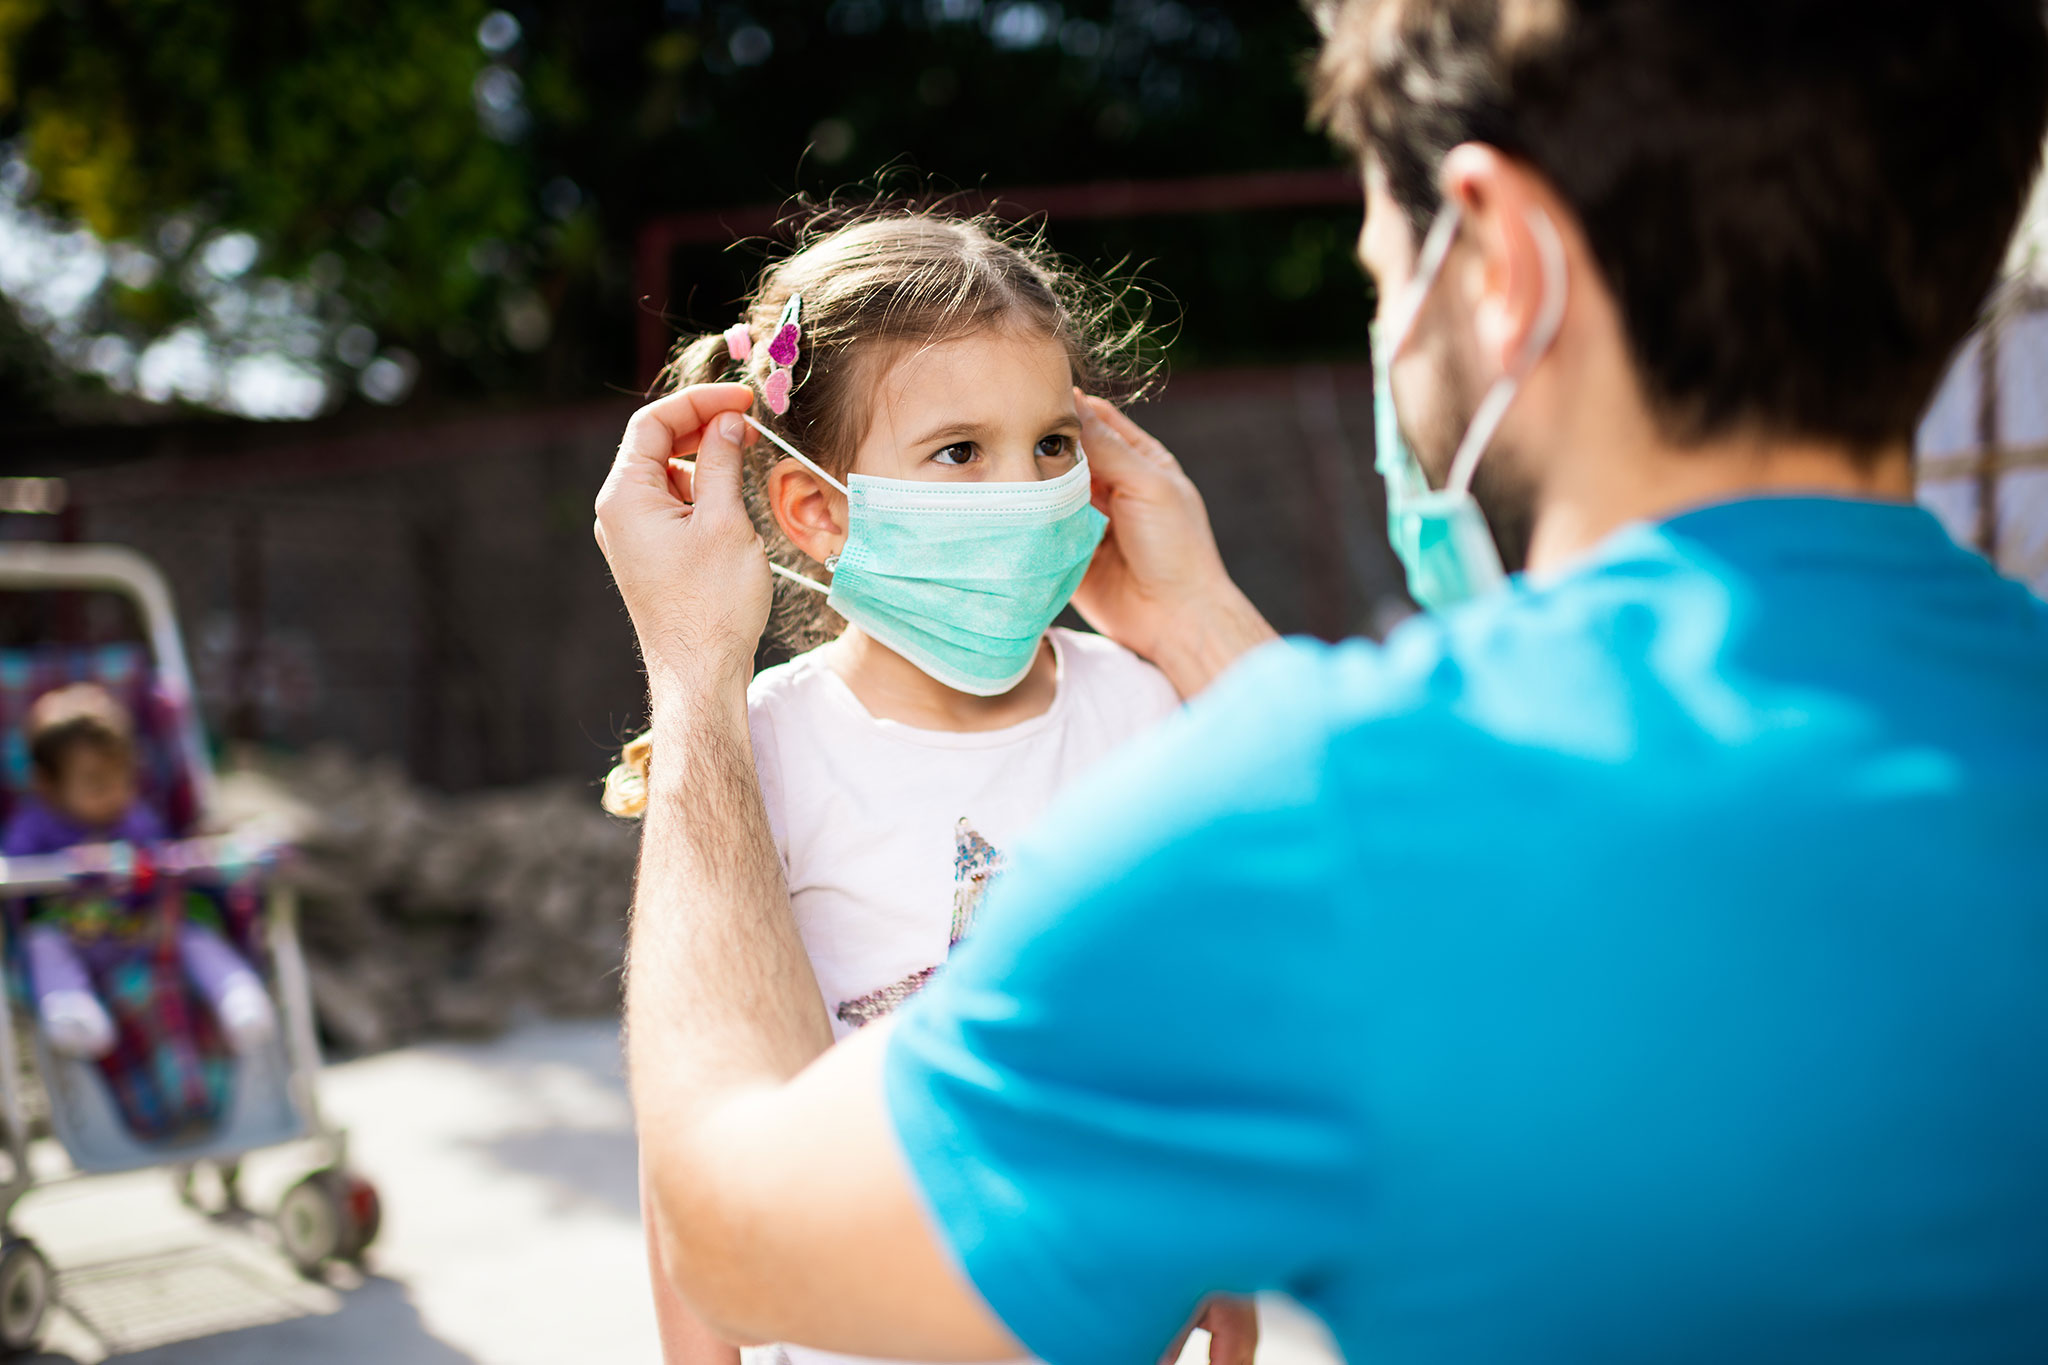 Should babies and children wear masks or face coverings?